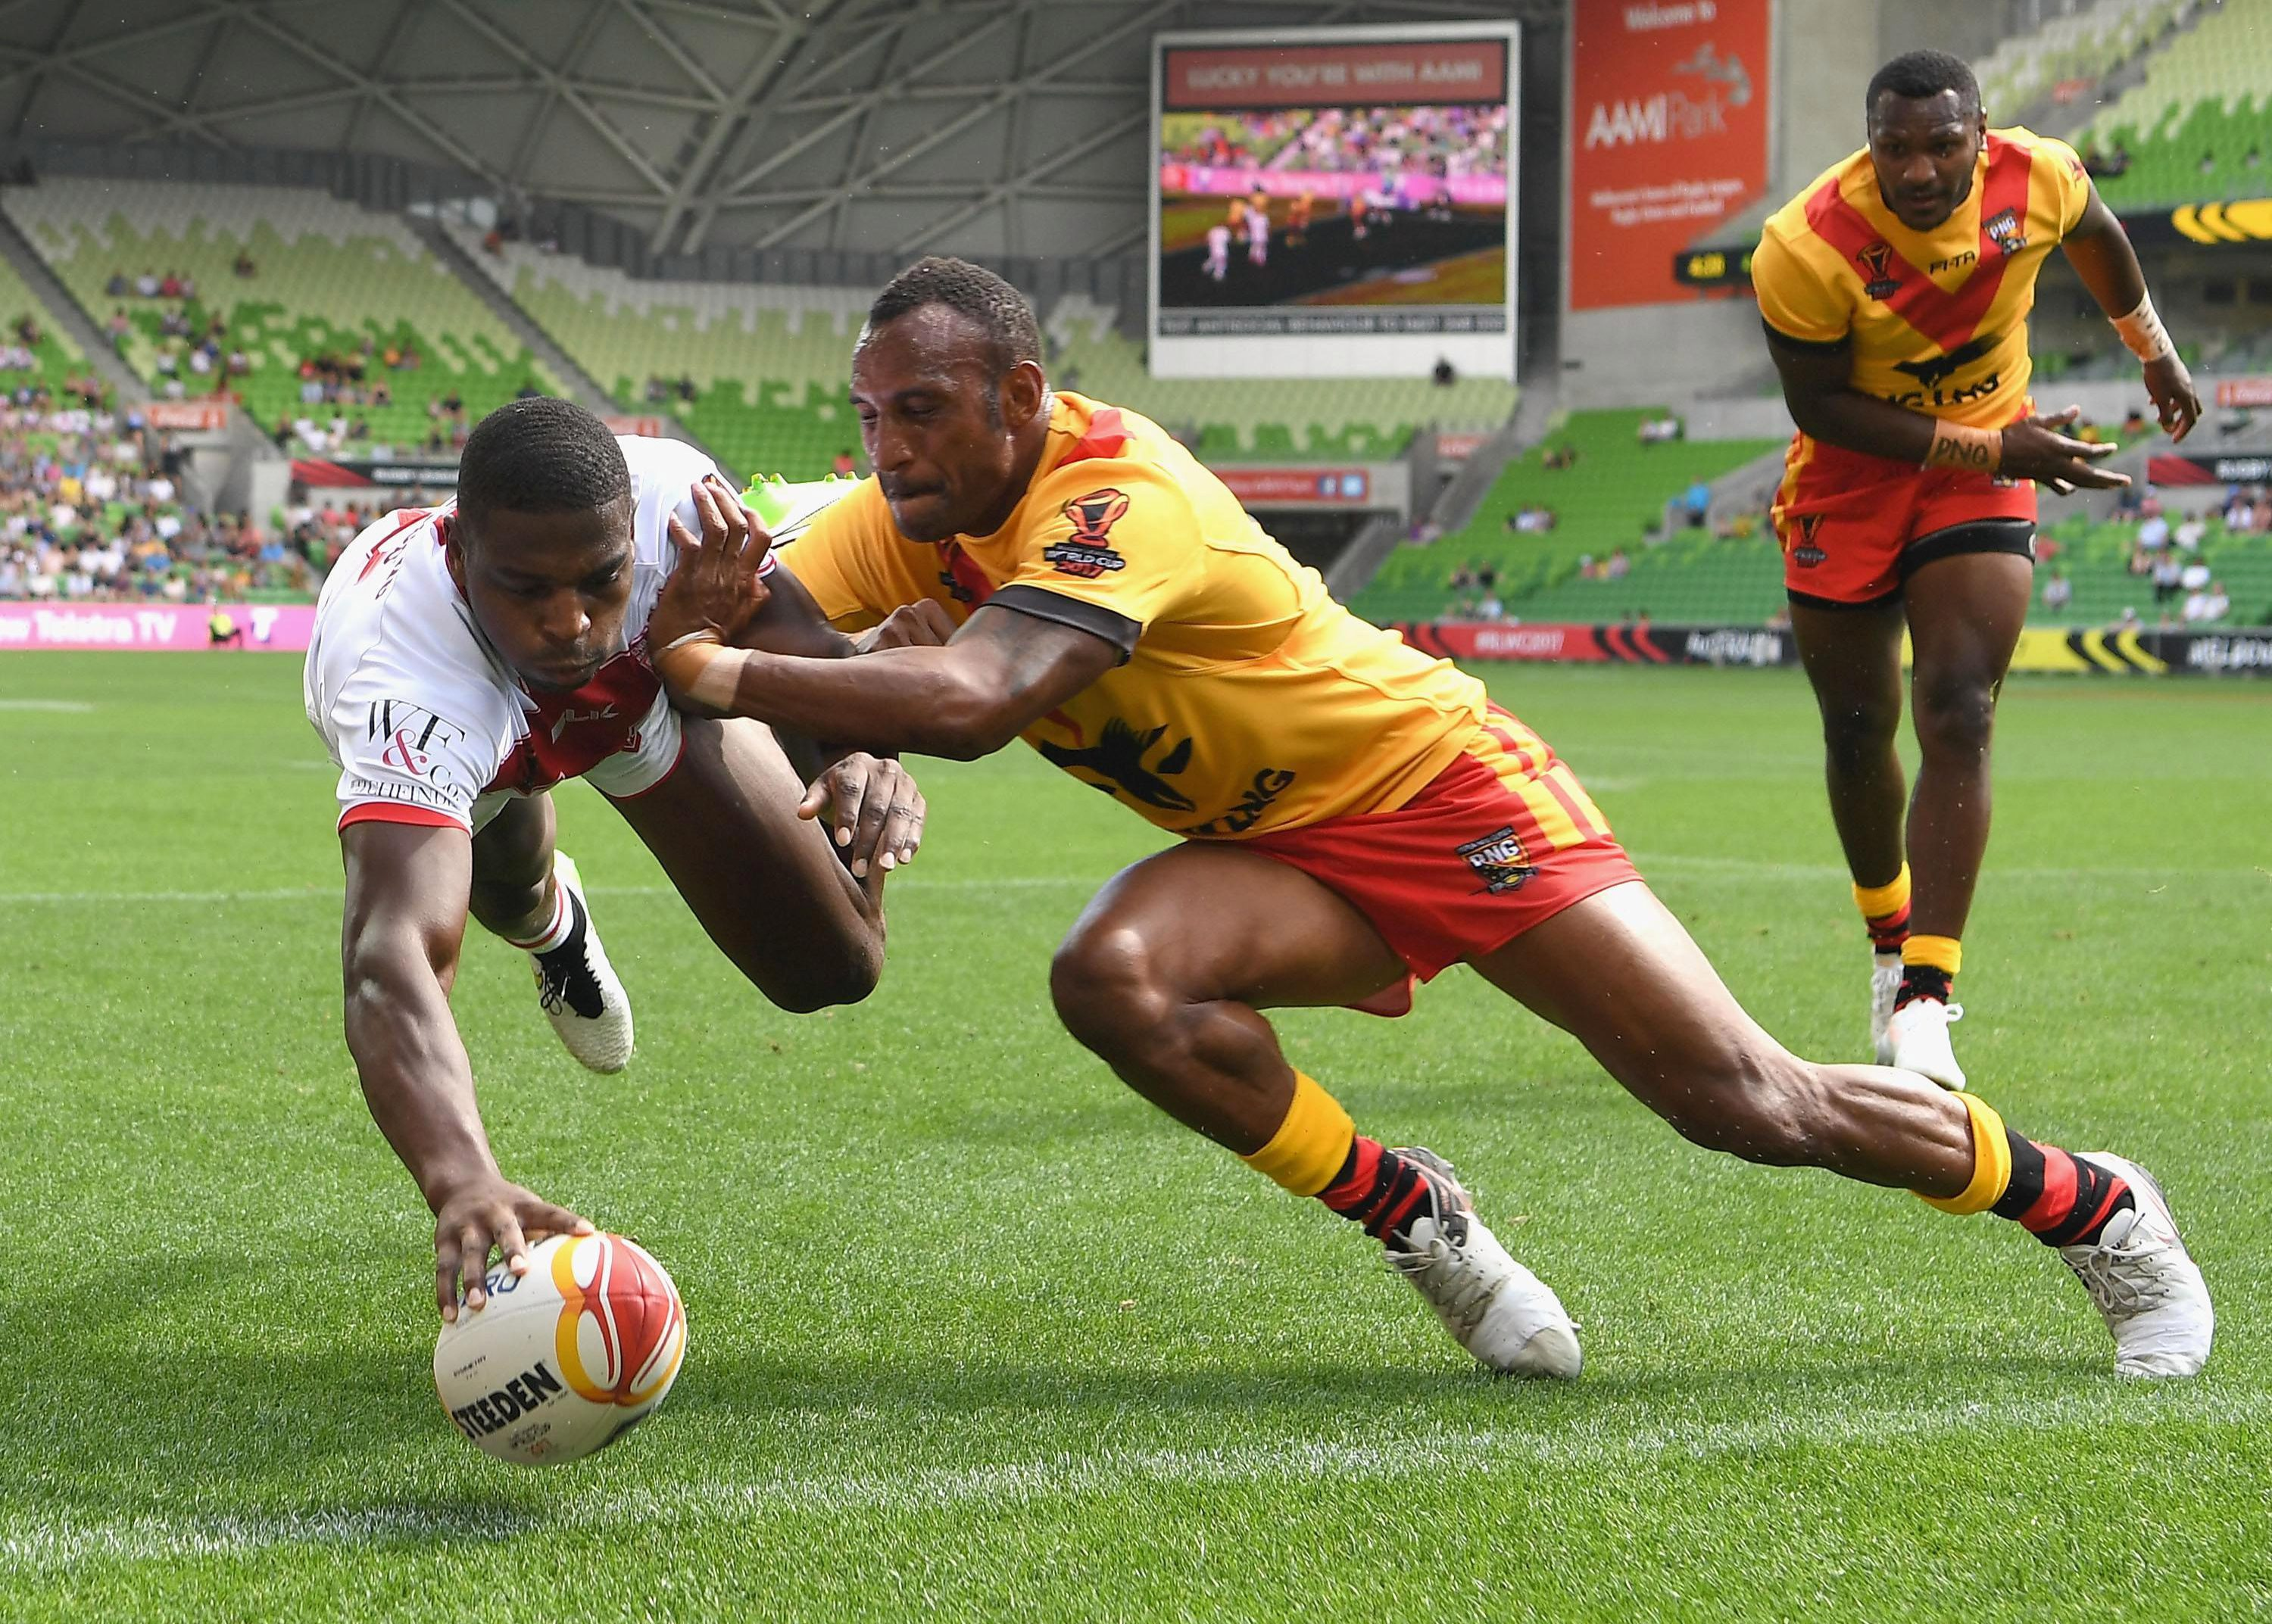 Jermaine McGillvary admits he is starting to tire of being mistaken for Huddersfield team-mate Michael Lawrence